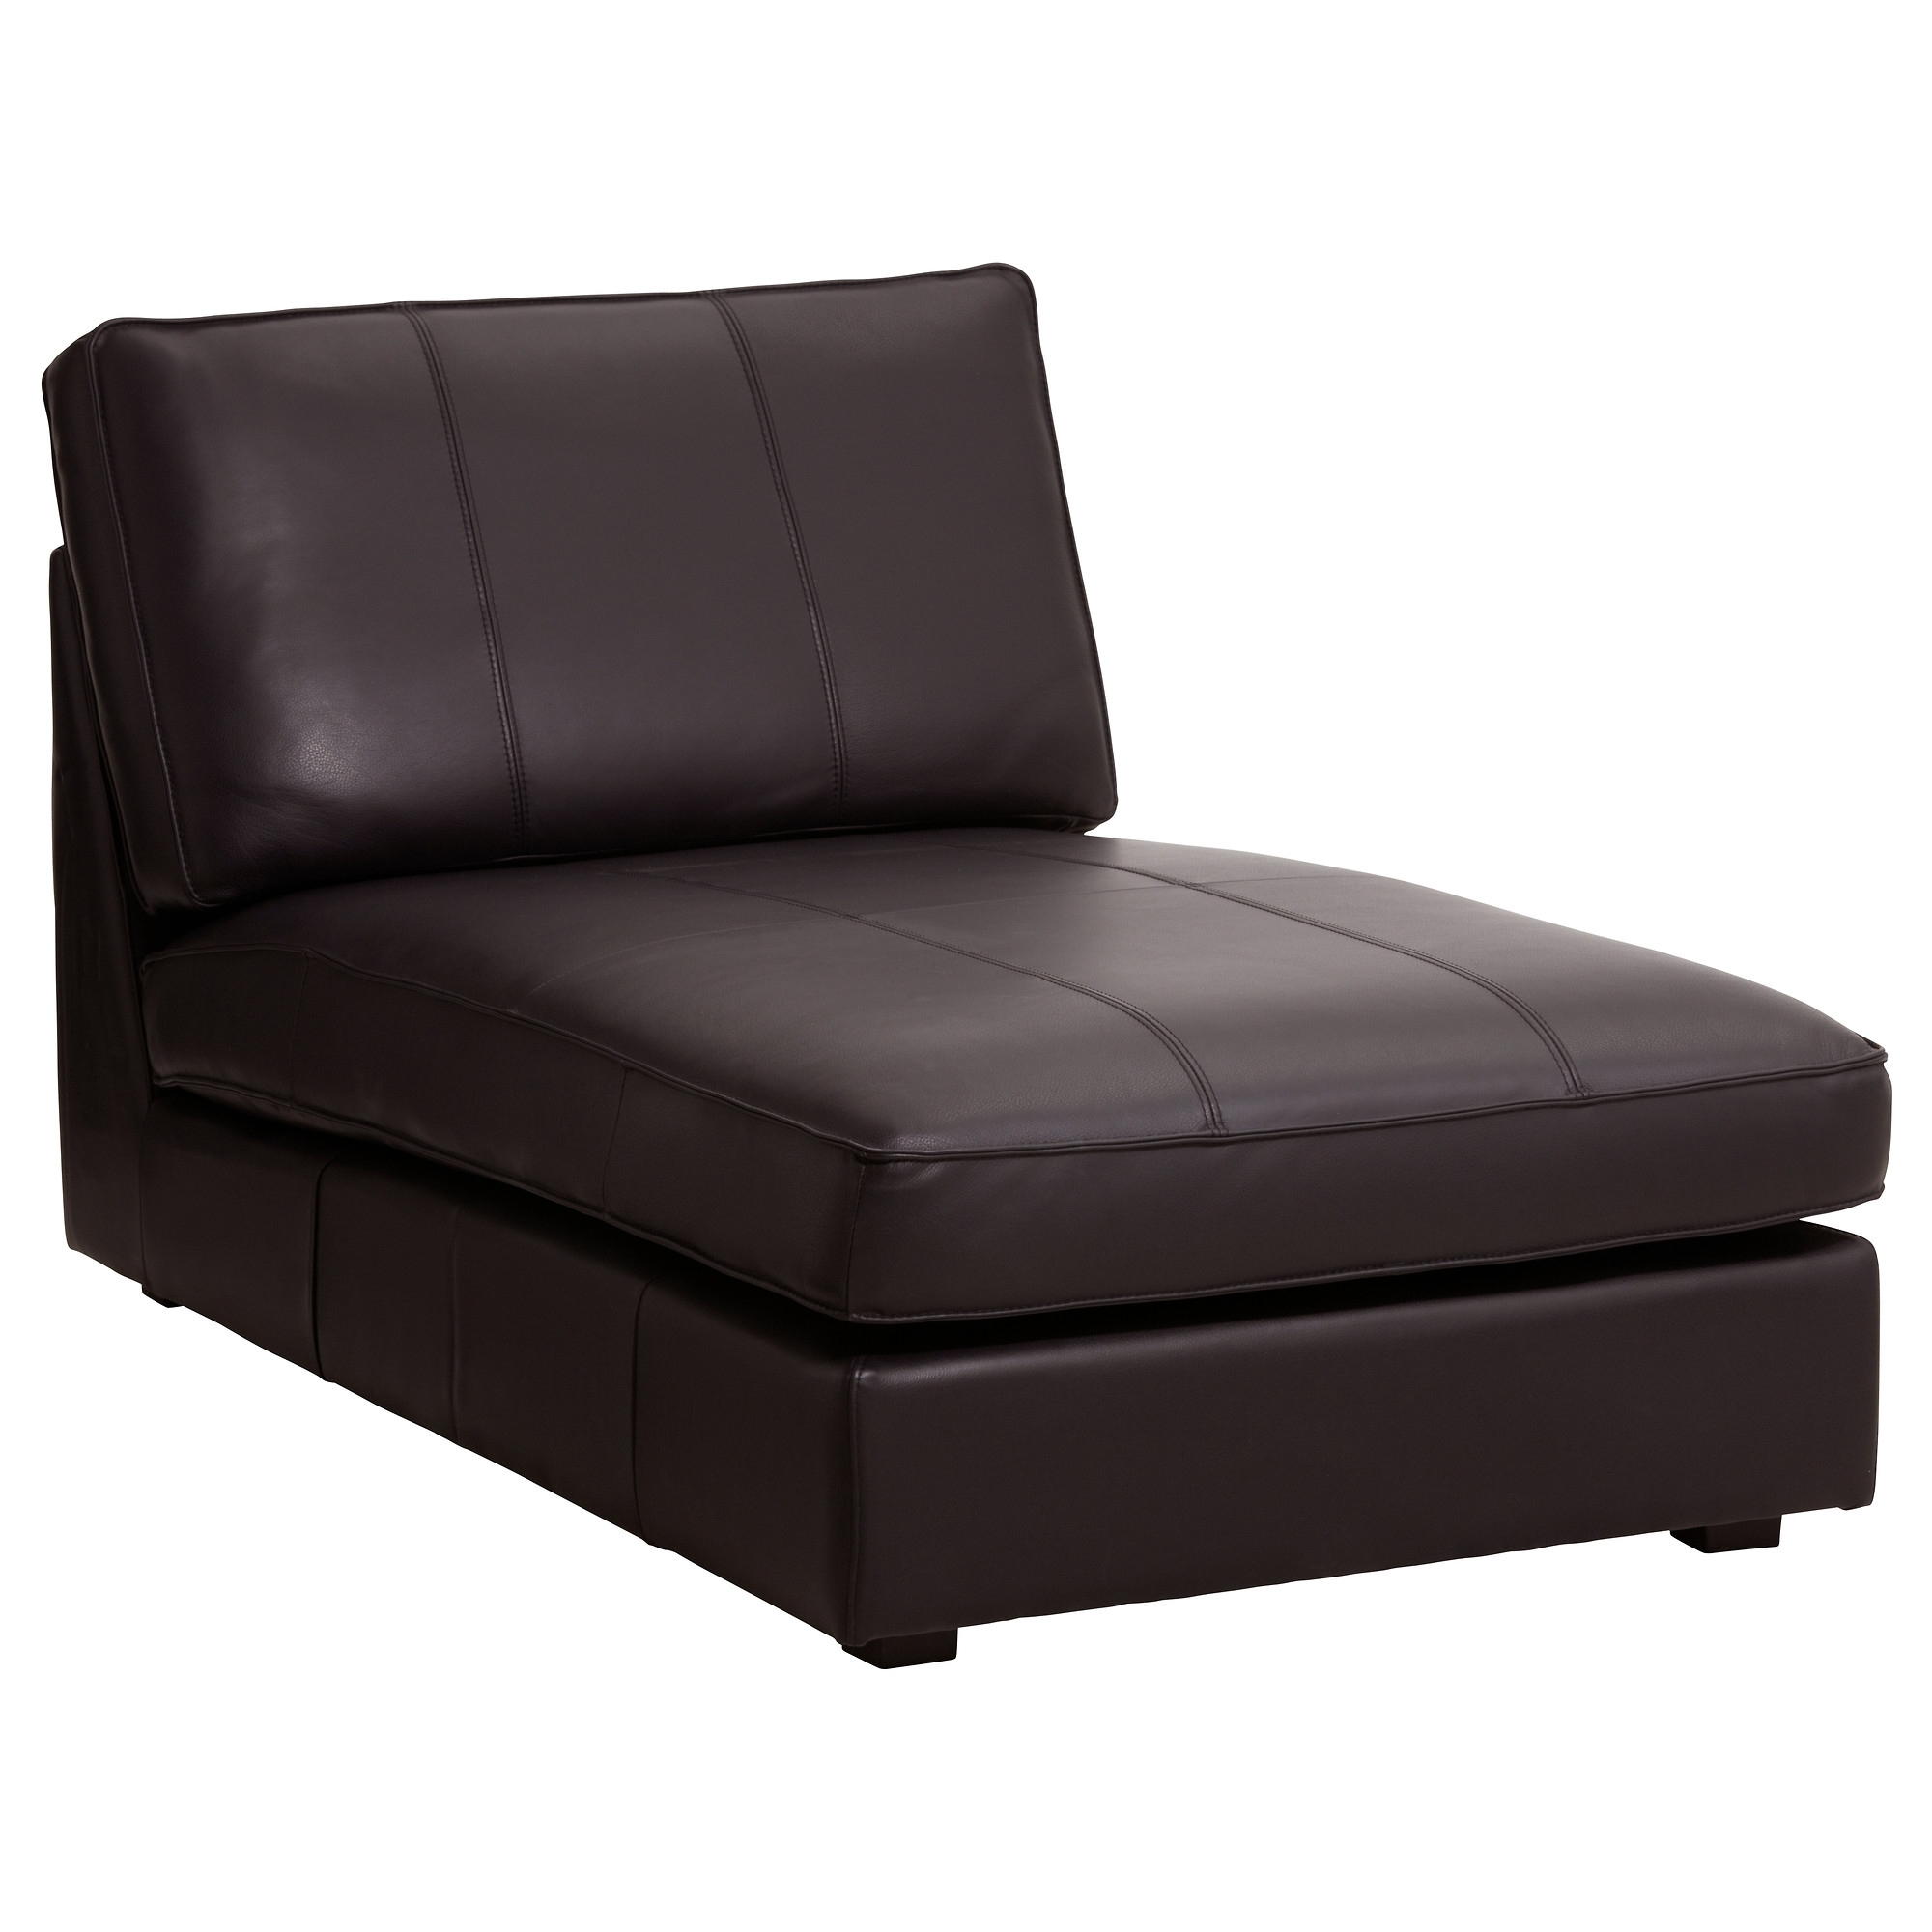 Most Up To Date Ikea Chaise Sofas For Kivik Chaise – Grann/bomstad Dark Brown – Ikea (View 8 of 15)